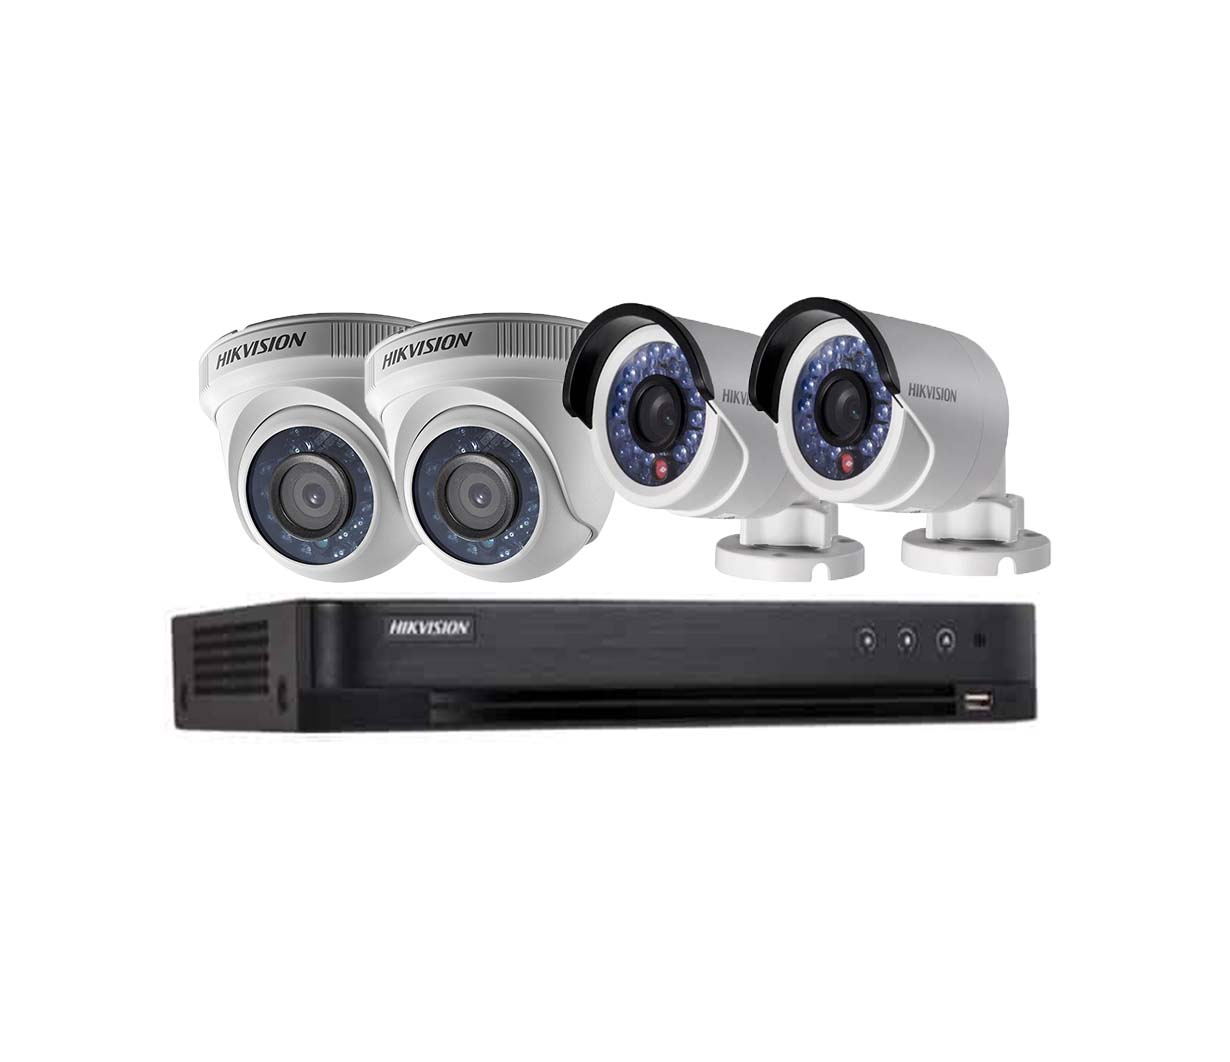 BỘ HIKVISION 4 CAMERA 2.0MP FHD, H.265+, 1000GB